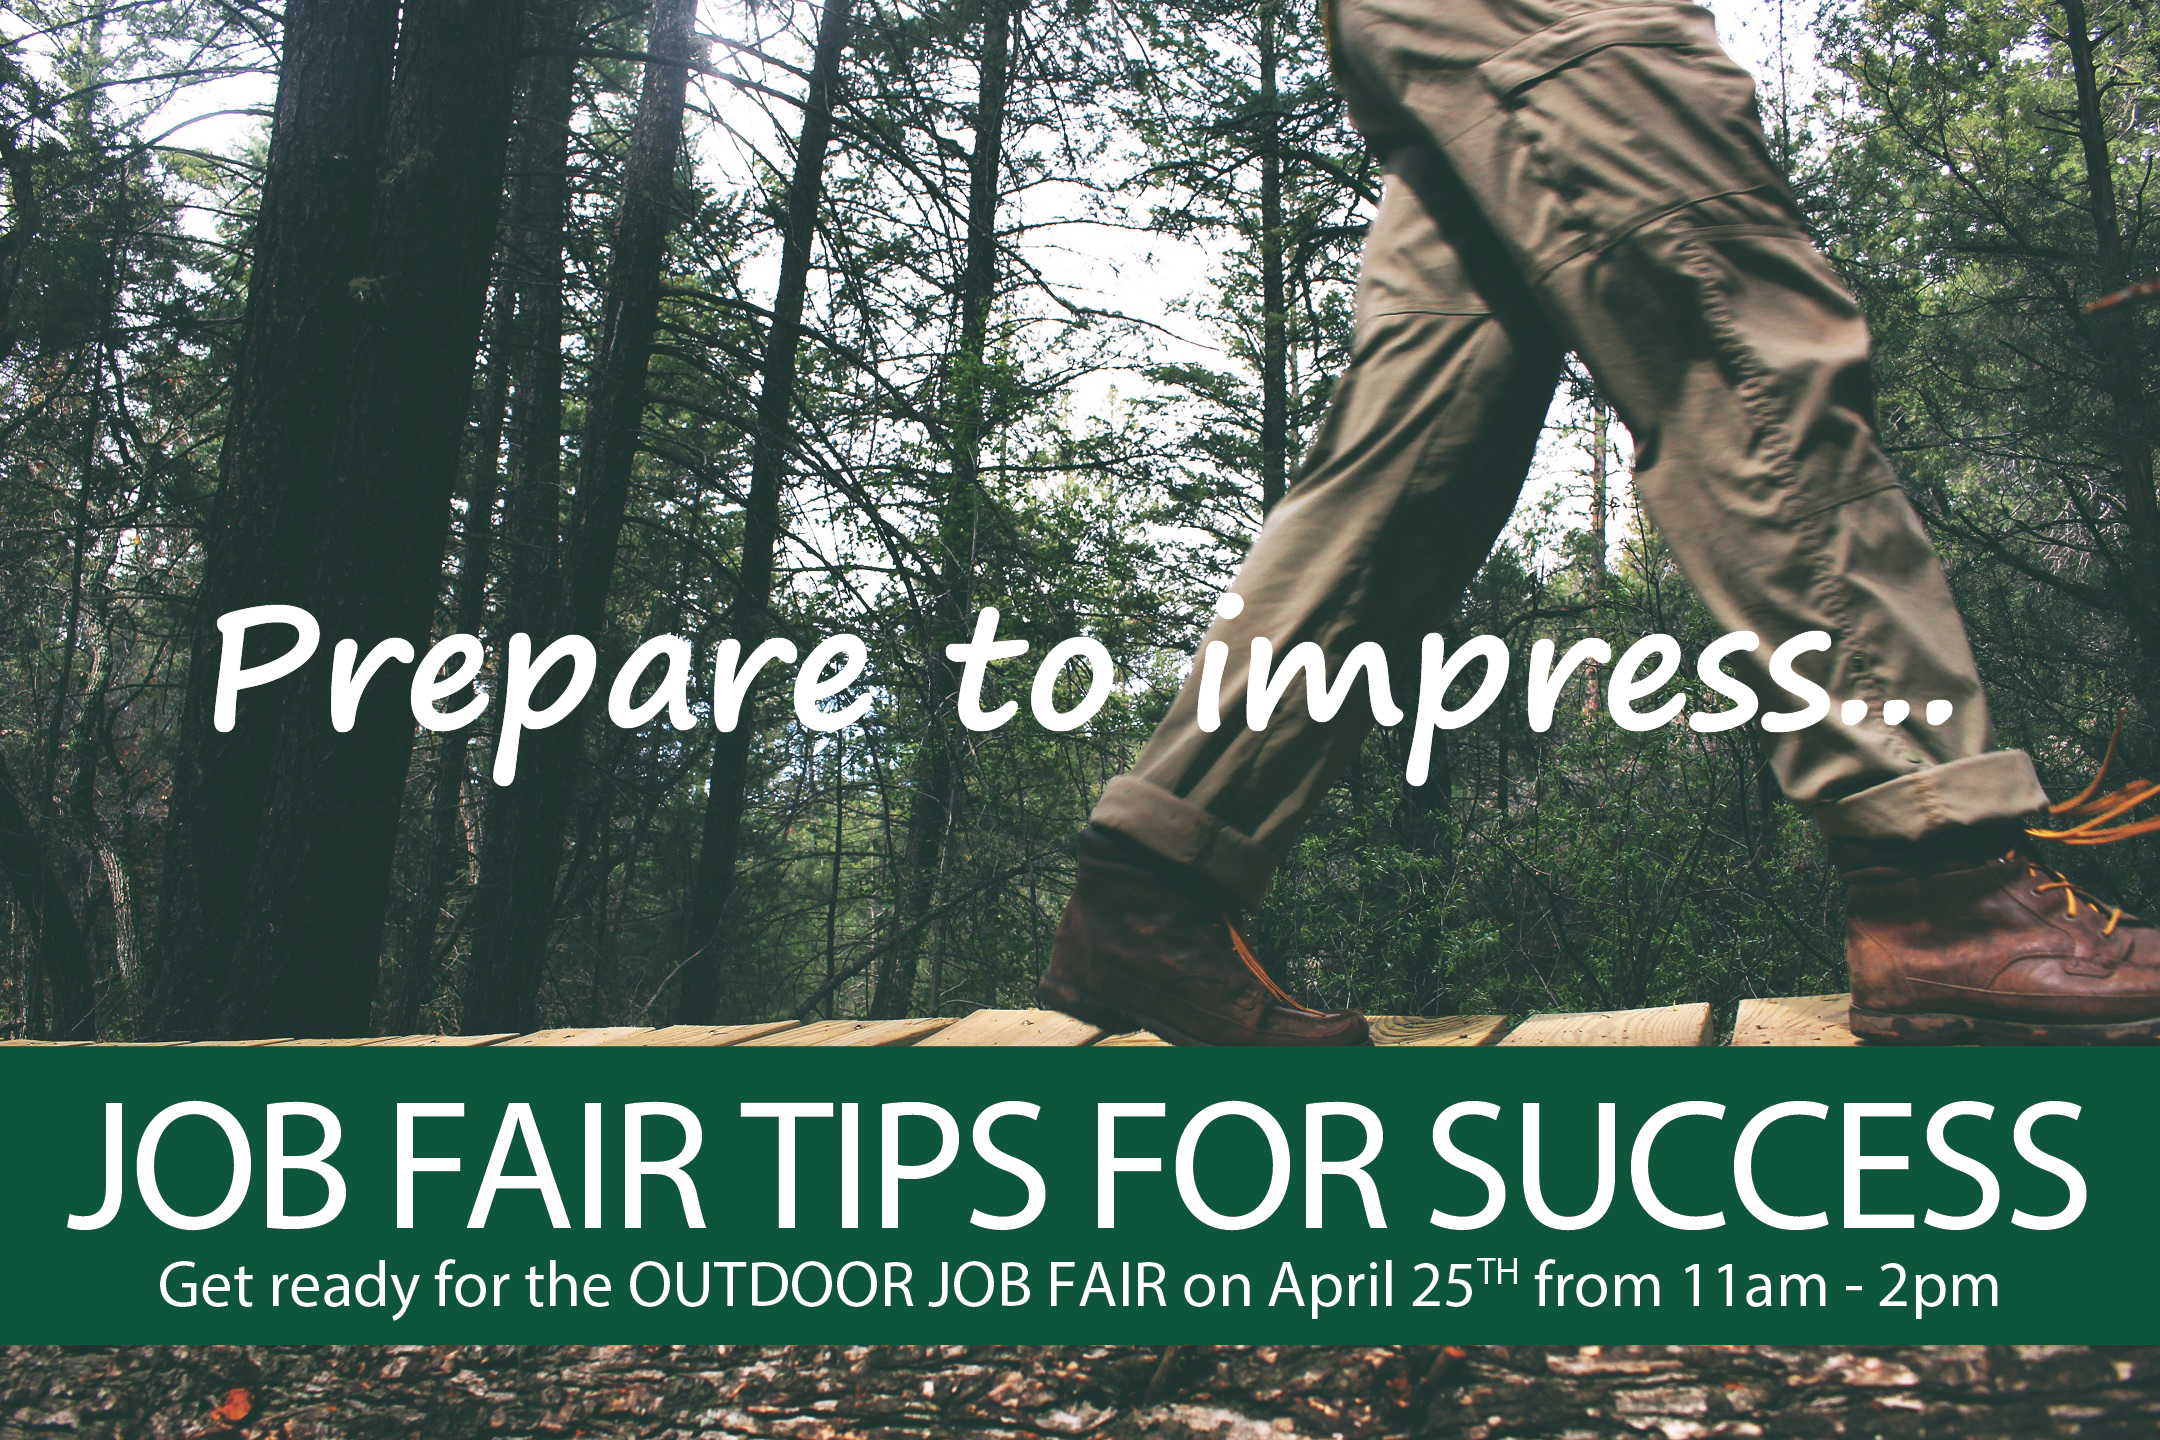 job fair tips for success outdoor sonoma county job link job fair tips for success outdoor